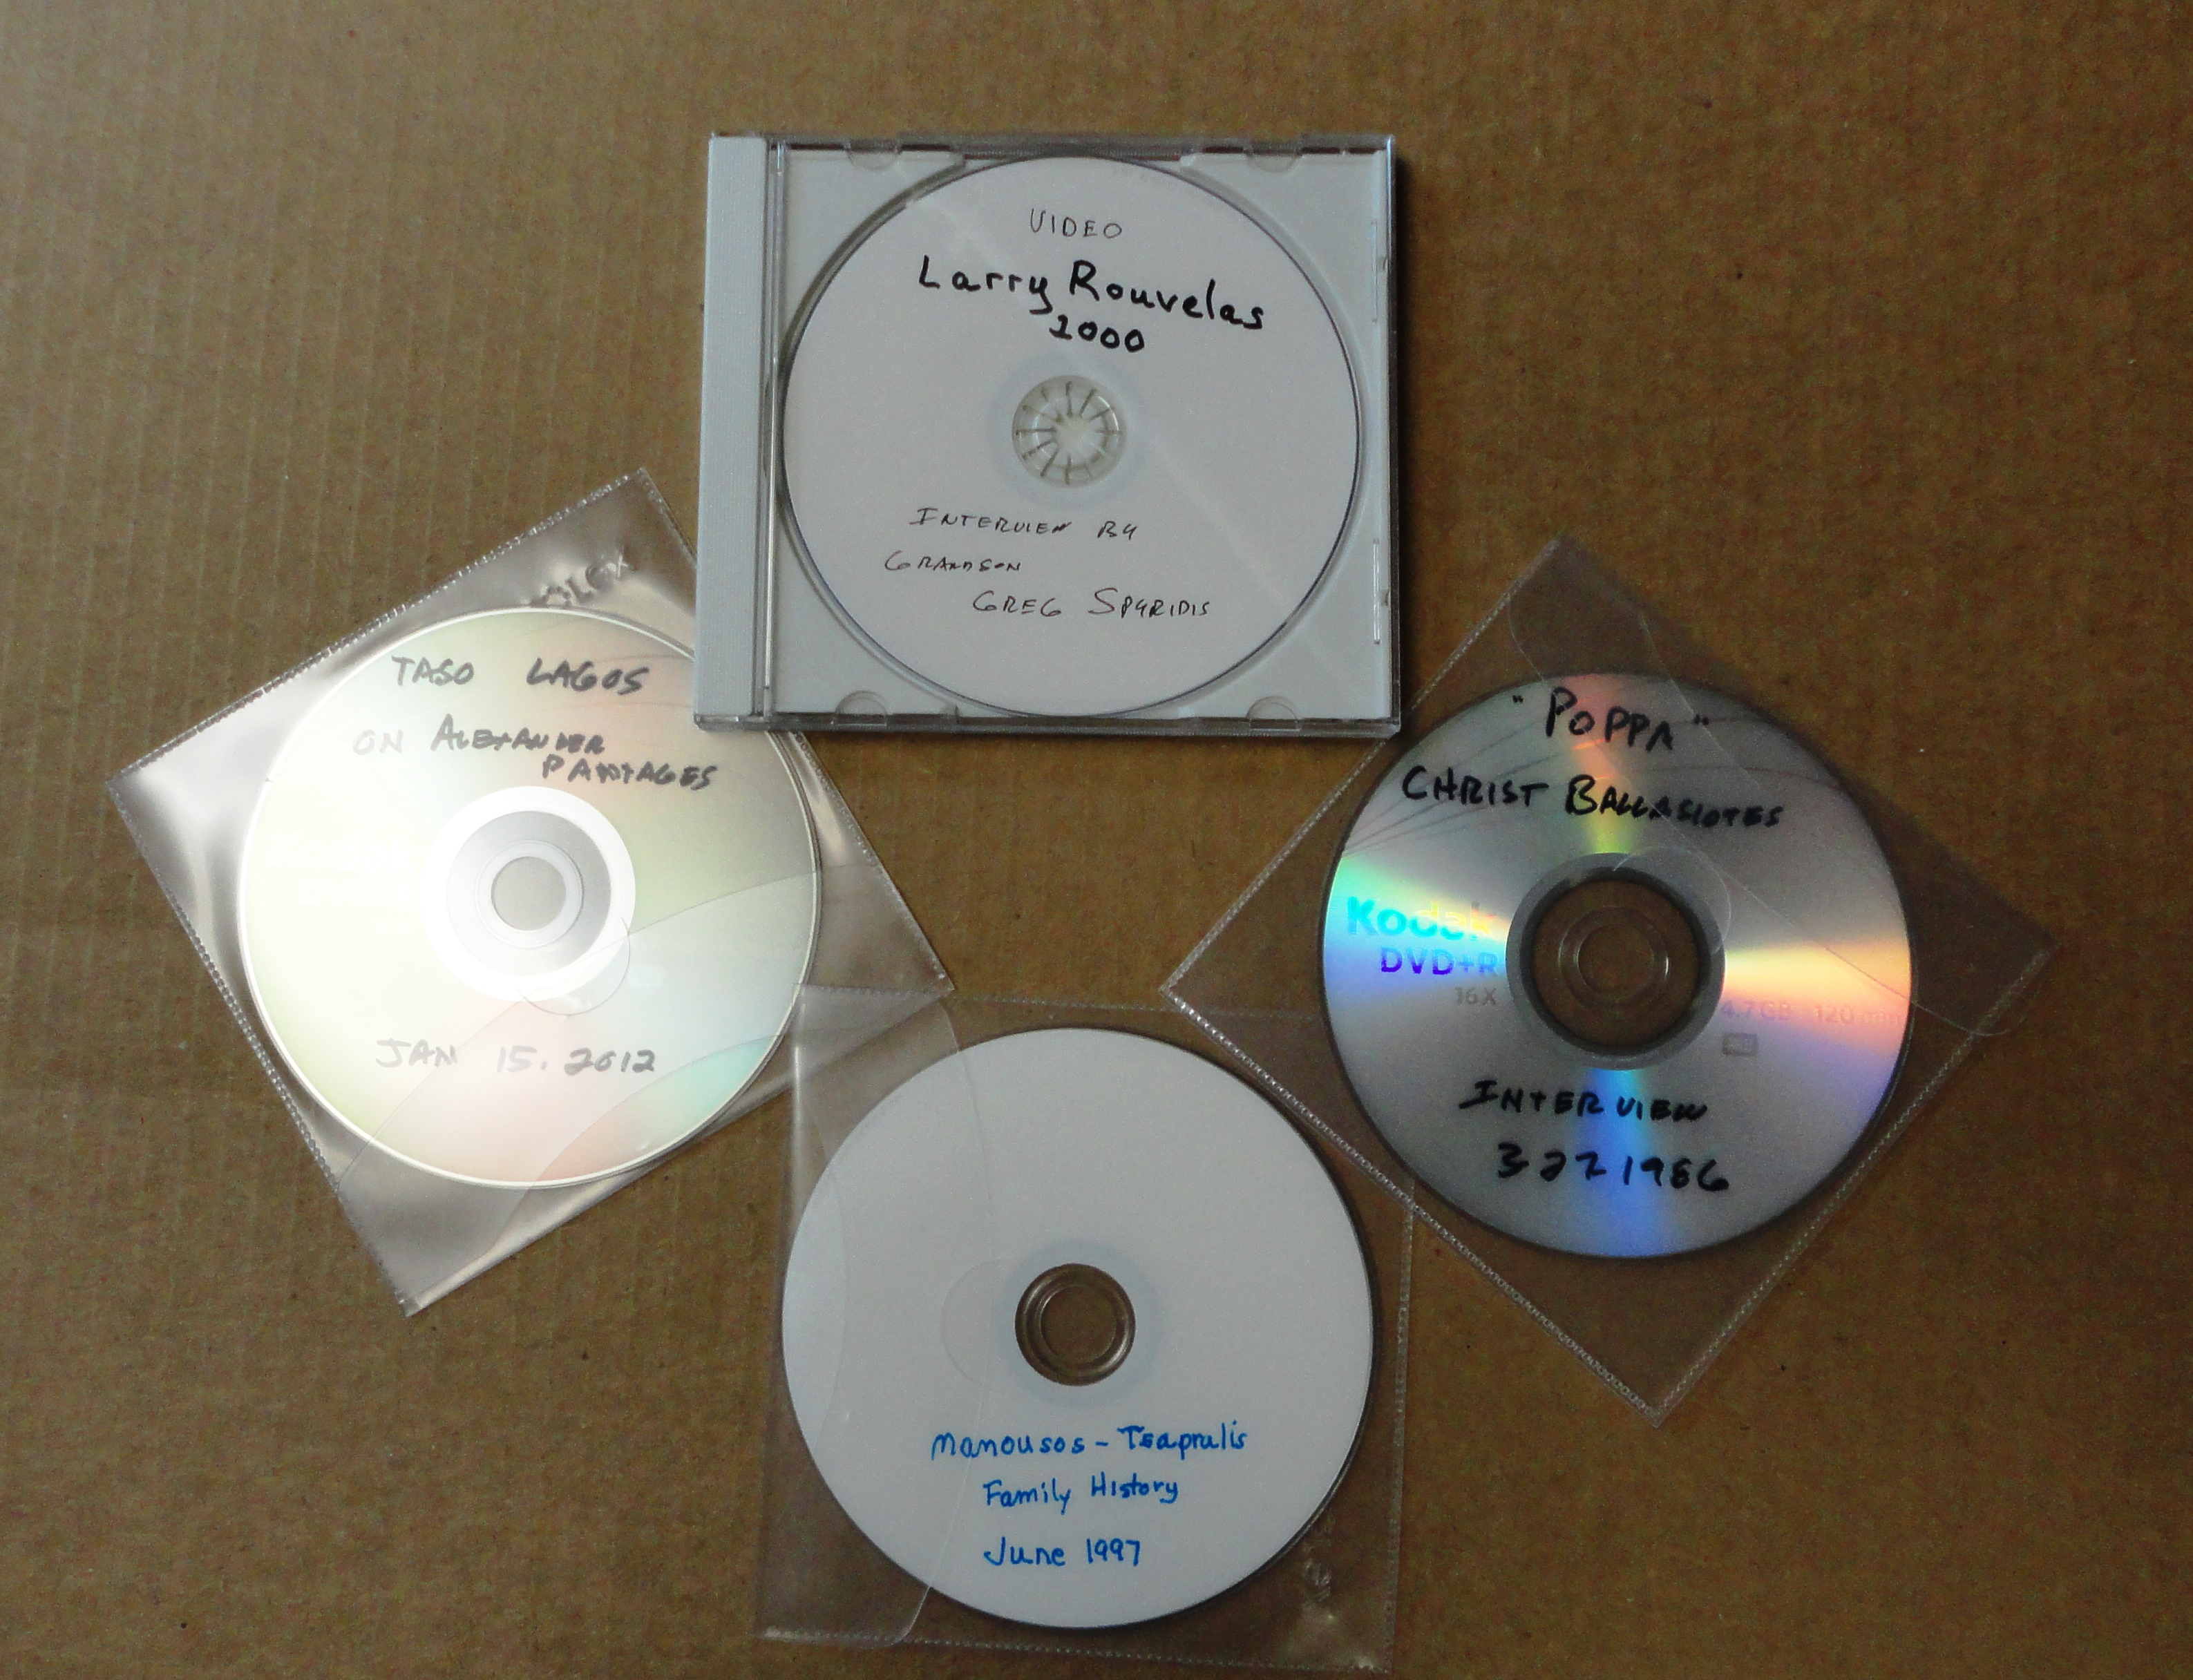 Film, Video and DVDs